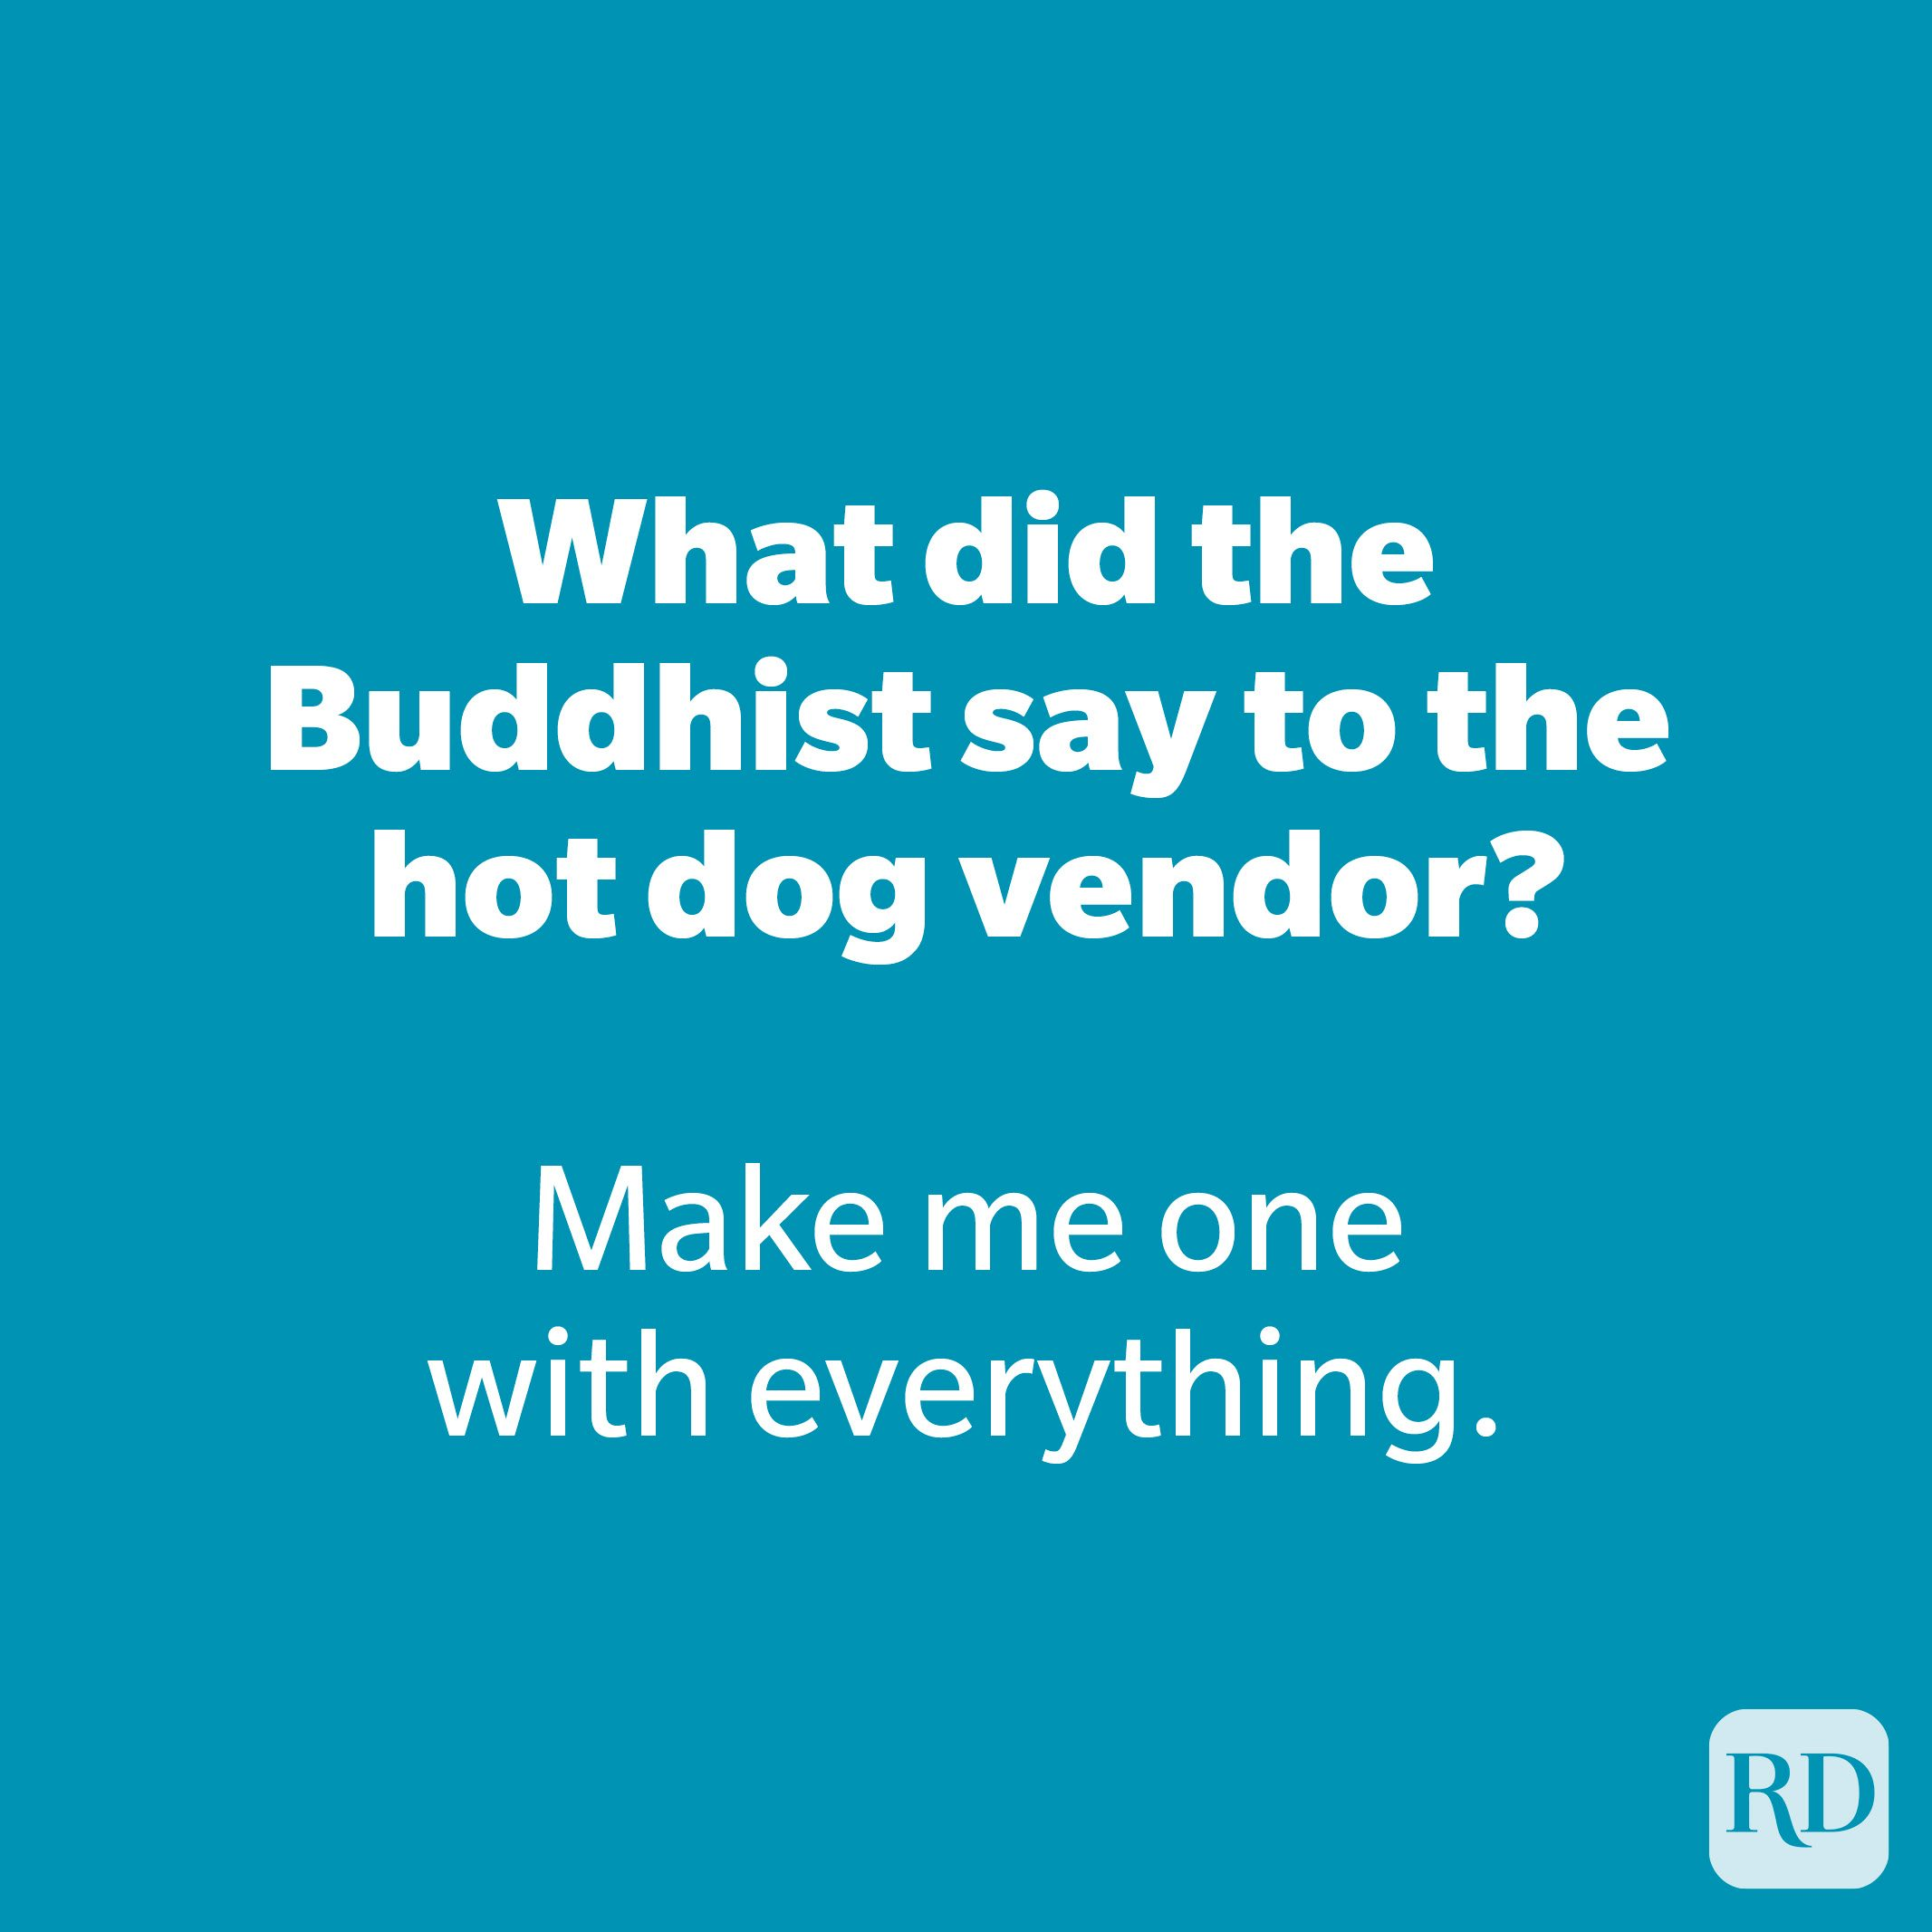 What did the Buddhist say to the hot dog vendor?